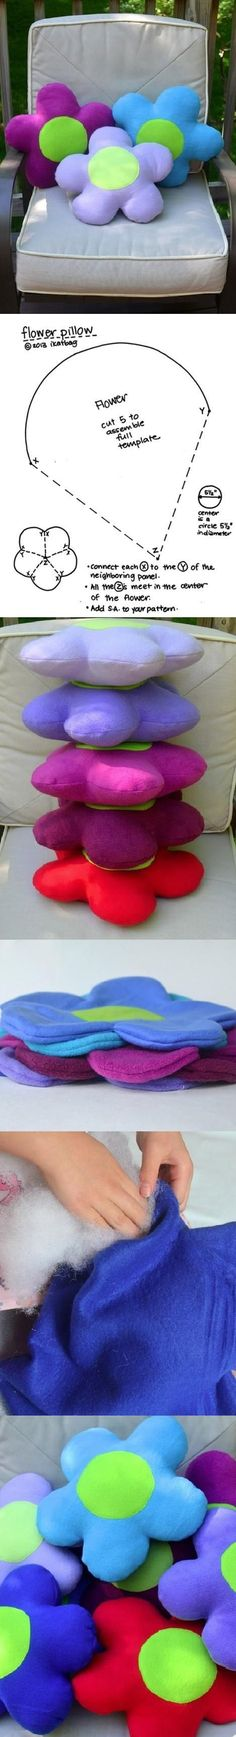 DIY Flower Pillow DIY Flower Pillow: